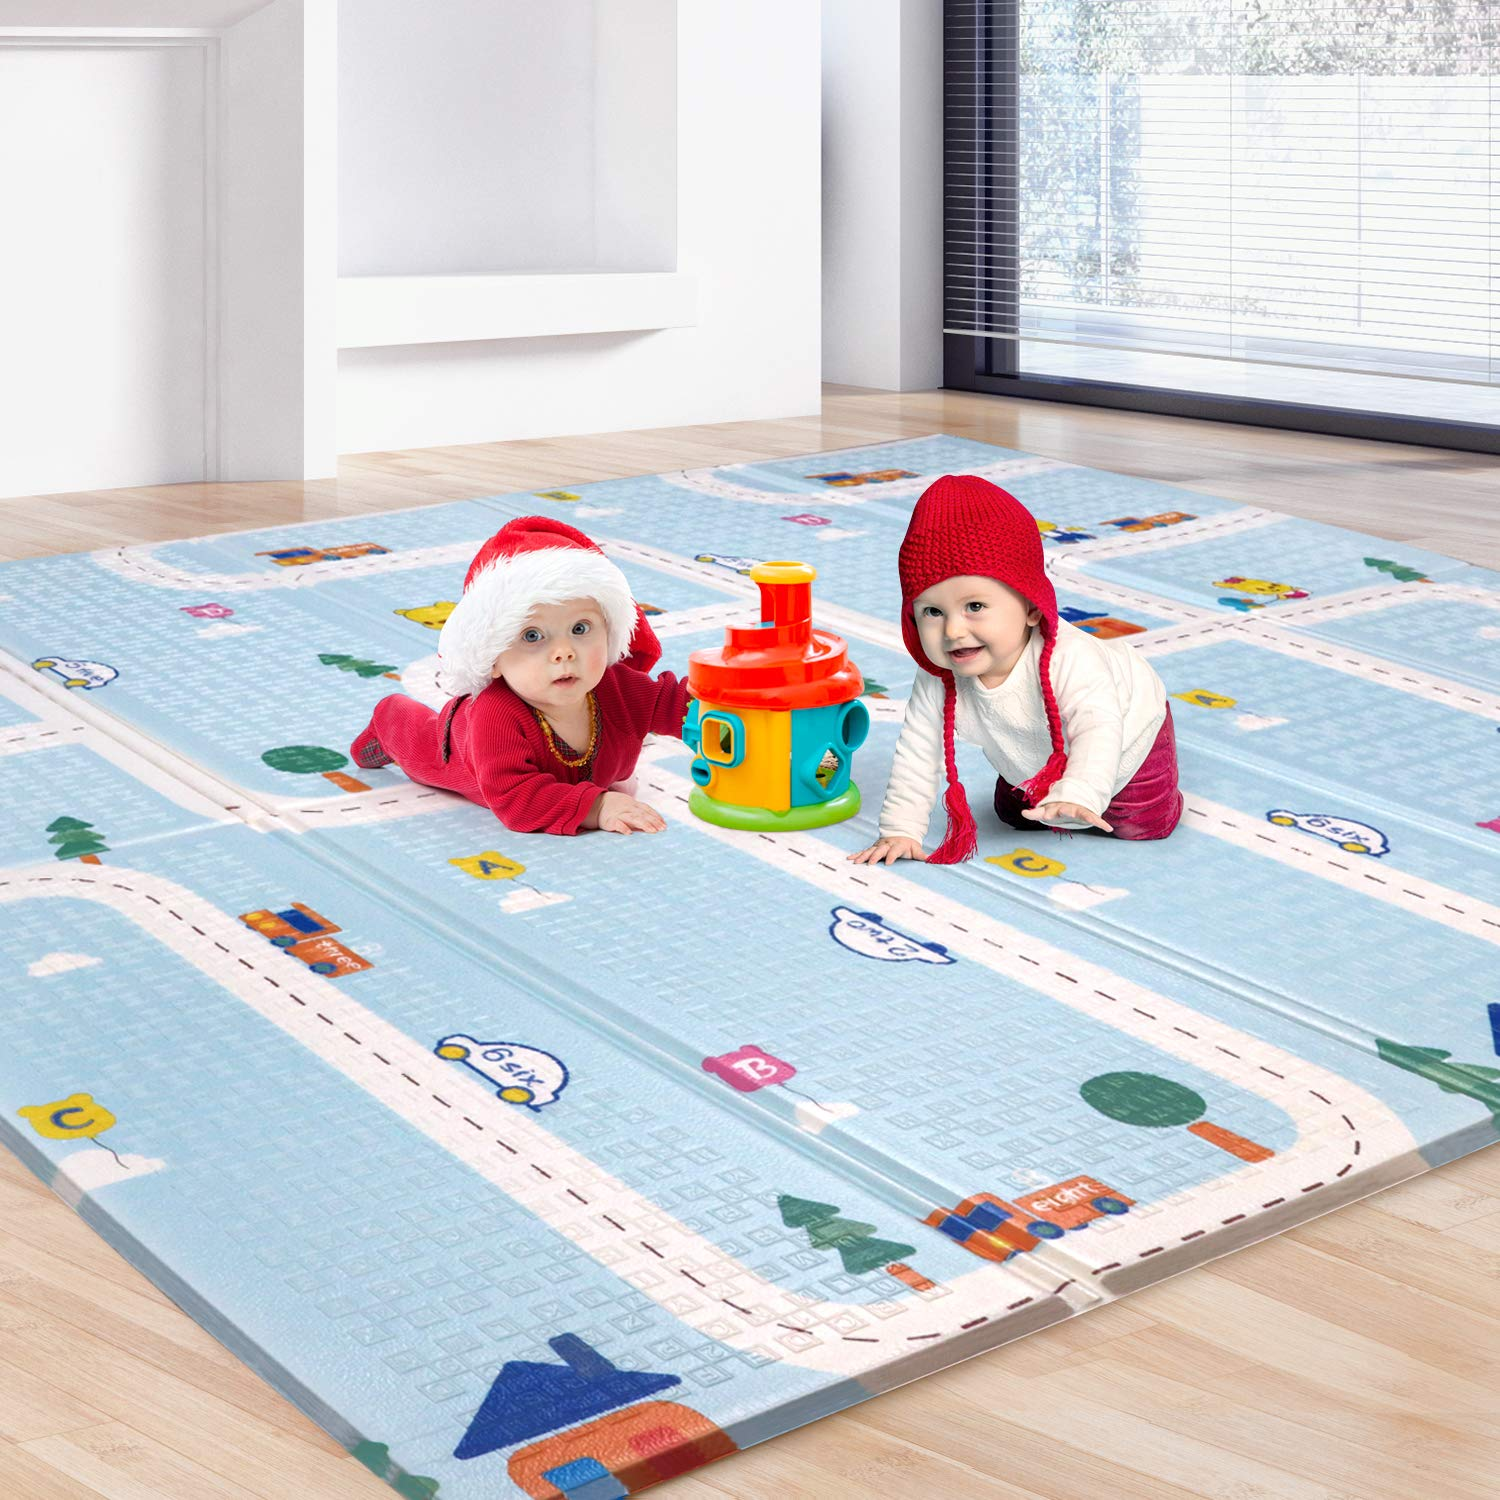 BAMMAX Play Mat, Foldable Baby Playmat Waterproof Reversible Kids Crawling Mat Extra Large Foam Floor Gym Activity Play Mat NonToxic Portable Tummy Time Playroom Mat for Infant Toddler - 77.5x70x0.6IN